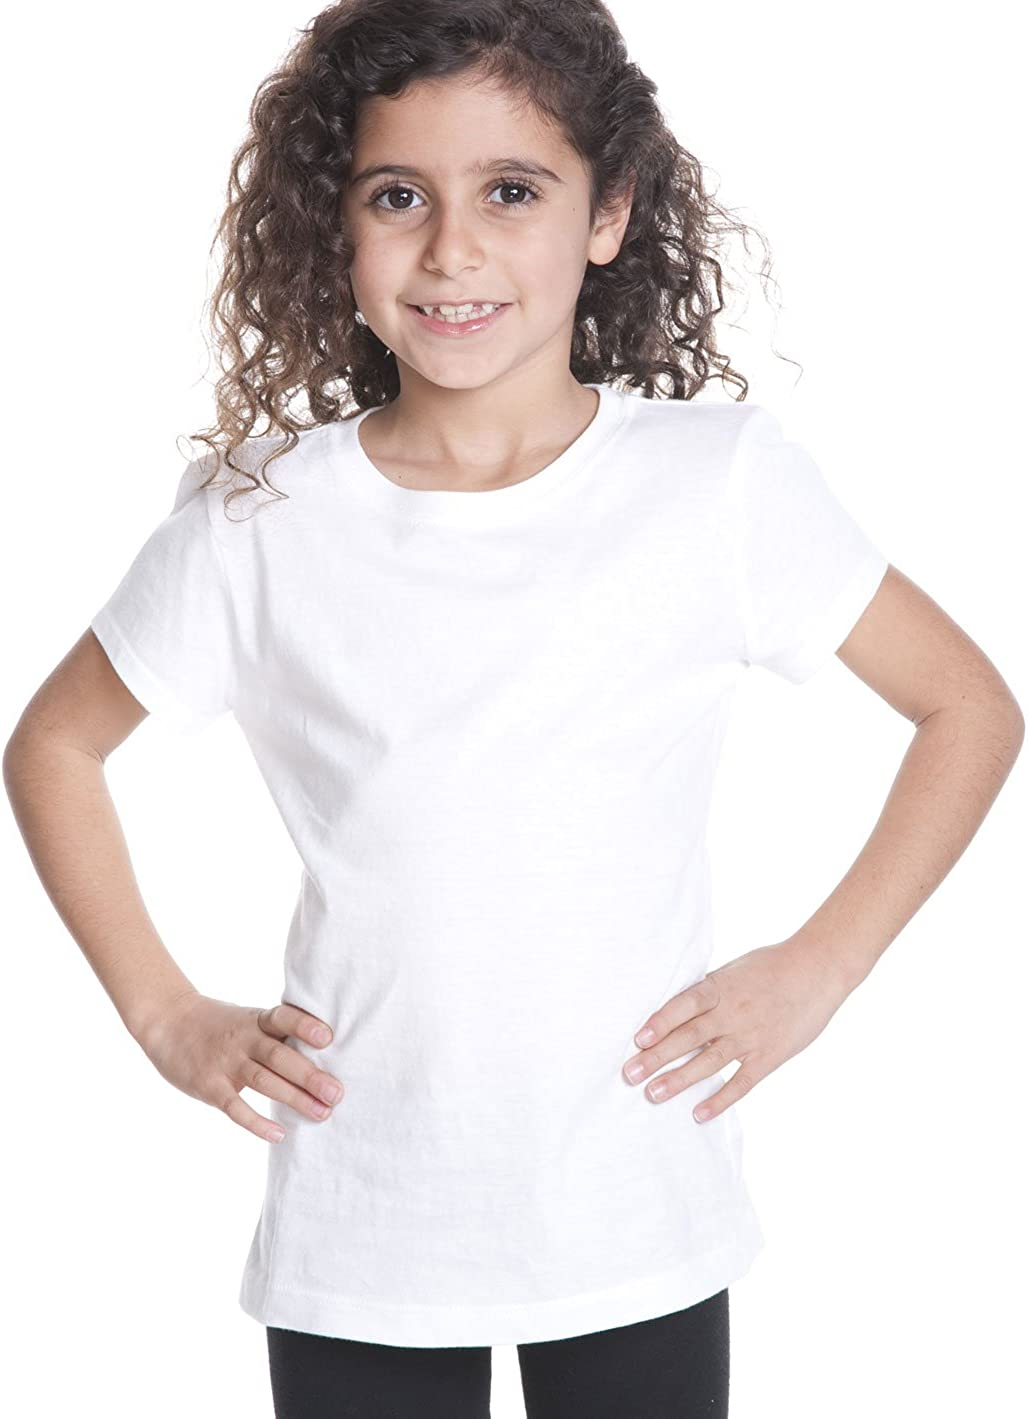 Next Level 3710 Youth Cotton Princess Tee